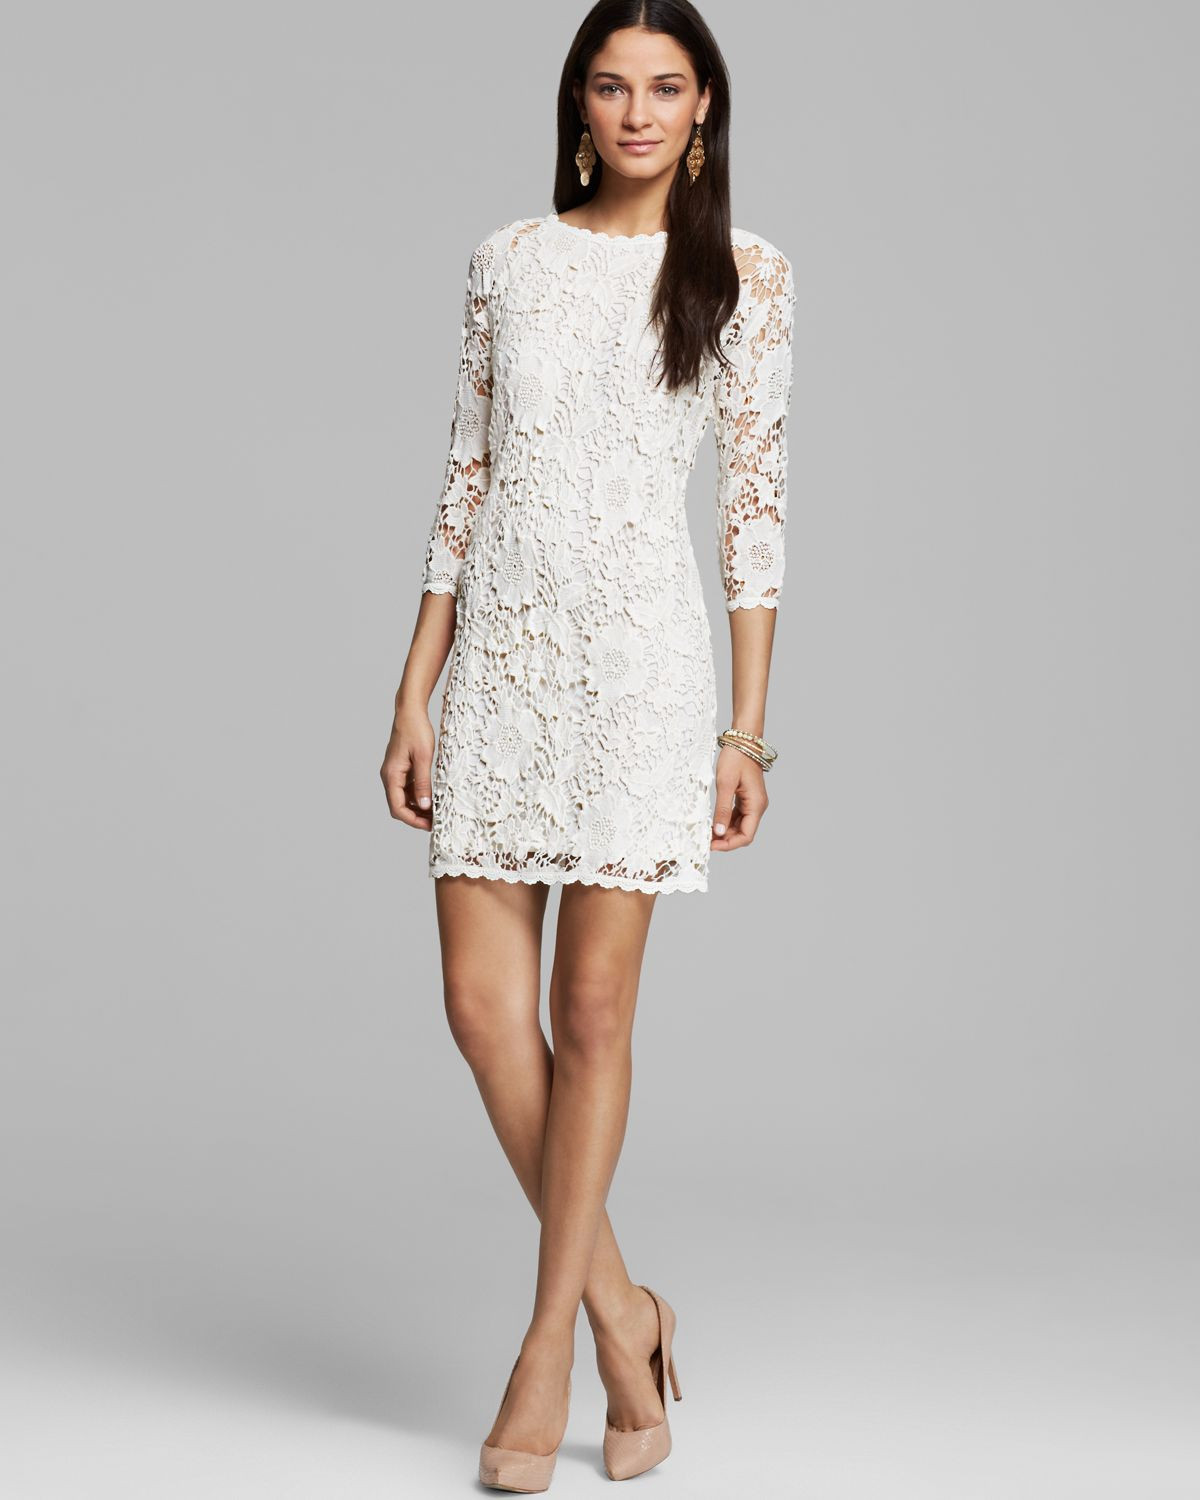 Lyst Velvet by graham & spencer Leslea Crochet Lace